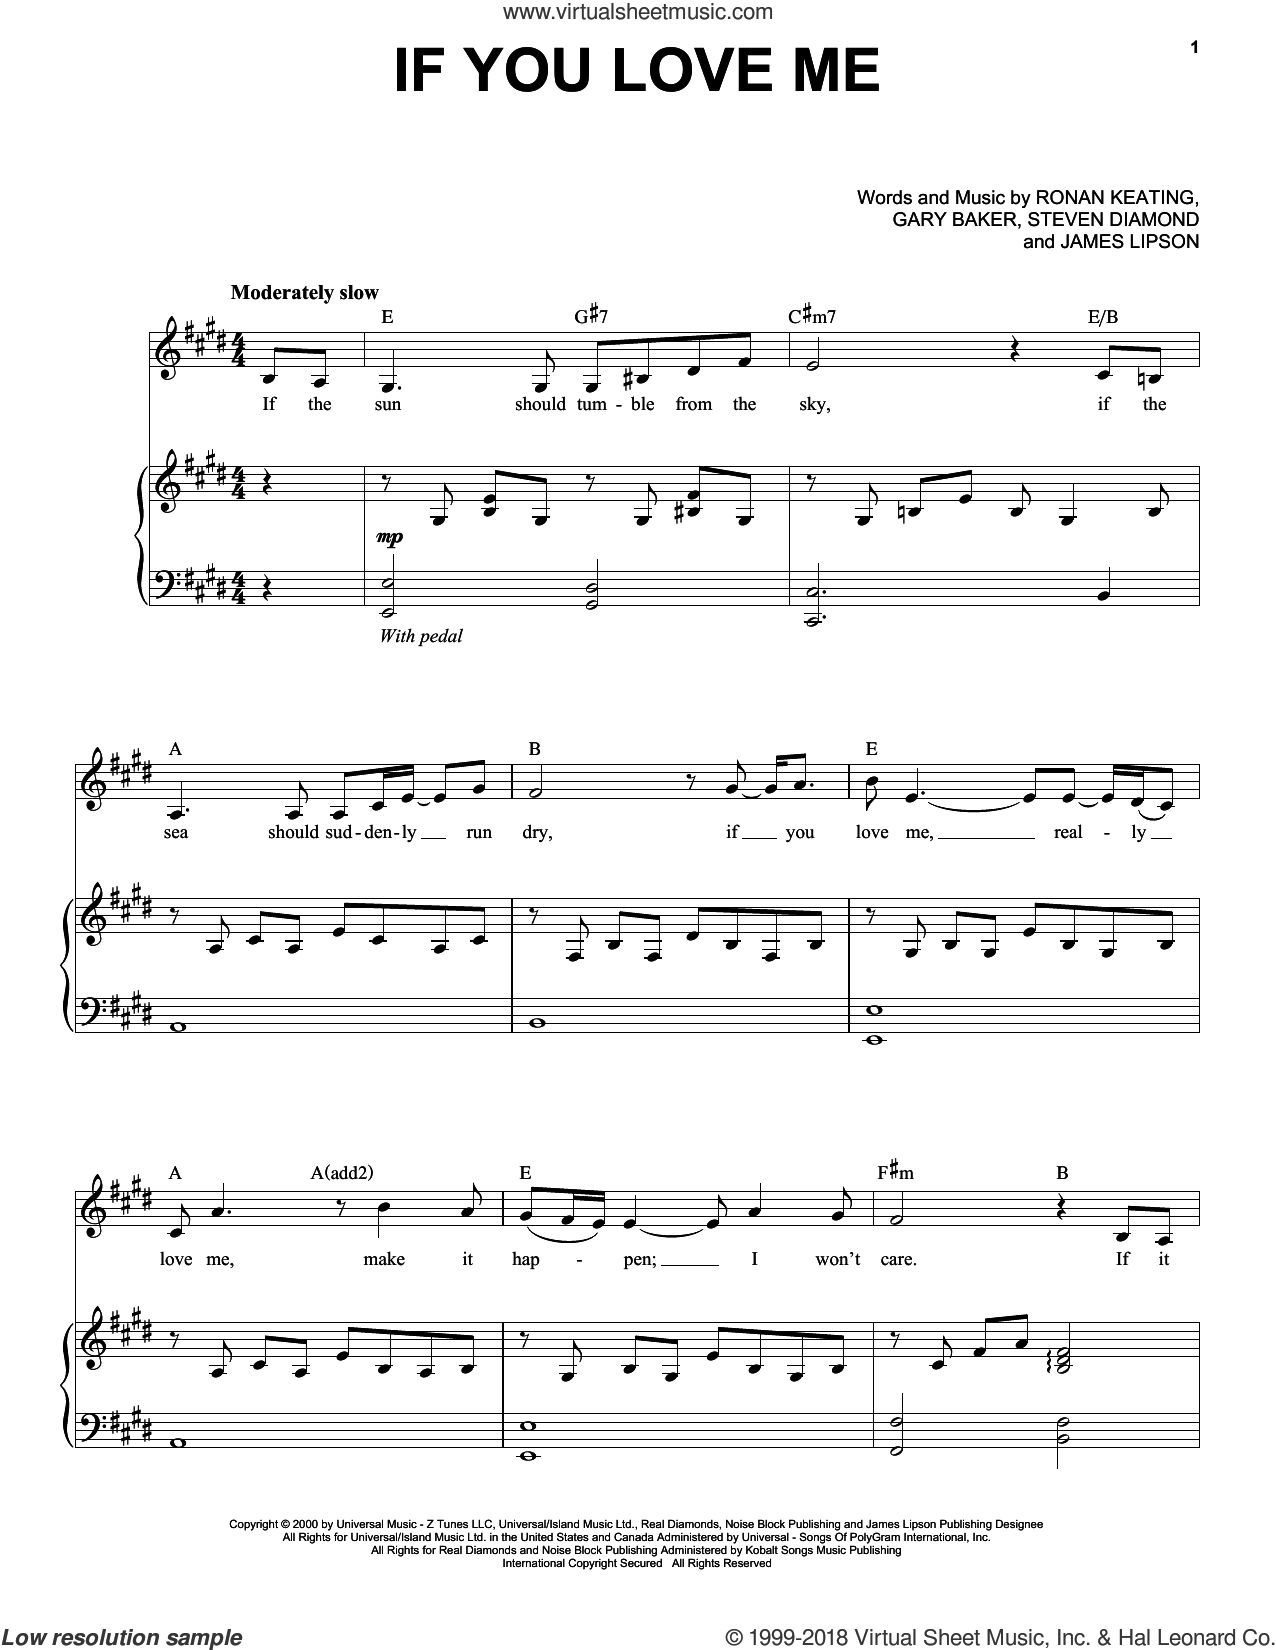 If You Love Me sheet music for voice and piano by Ronan Keating, Gary Baker, James Lipson and Steve Diamond, intermediate skill level